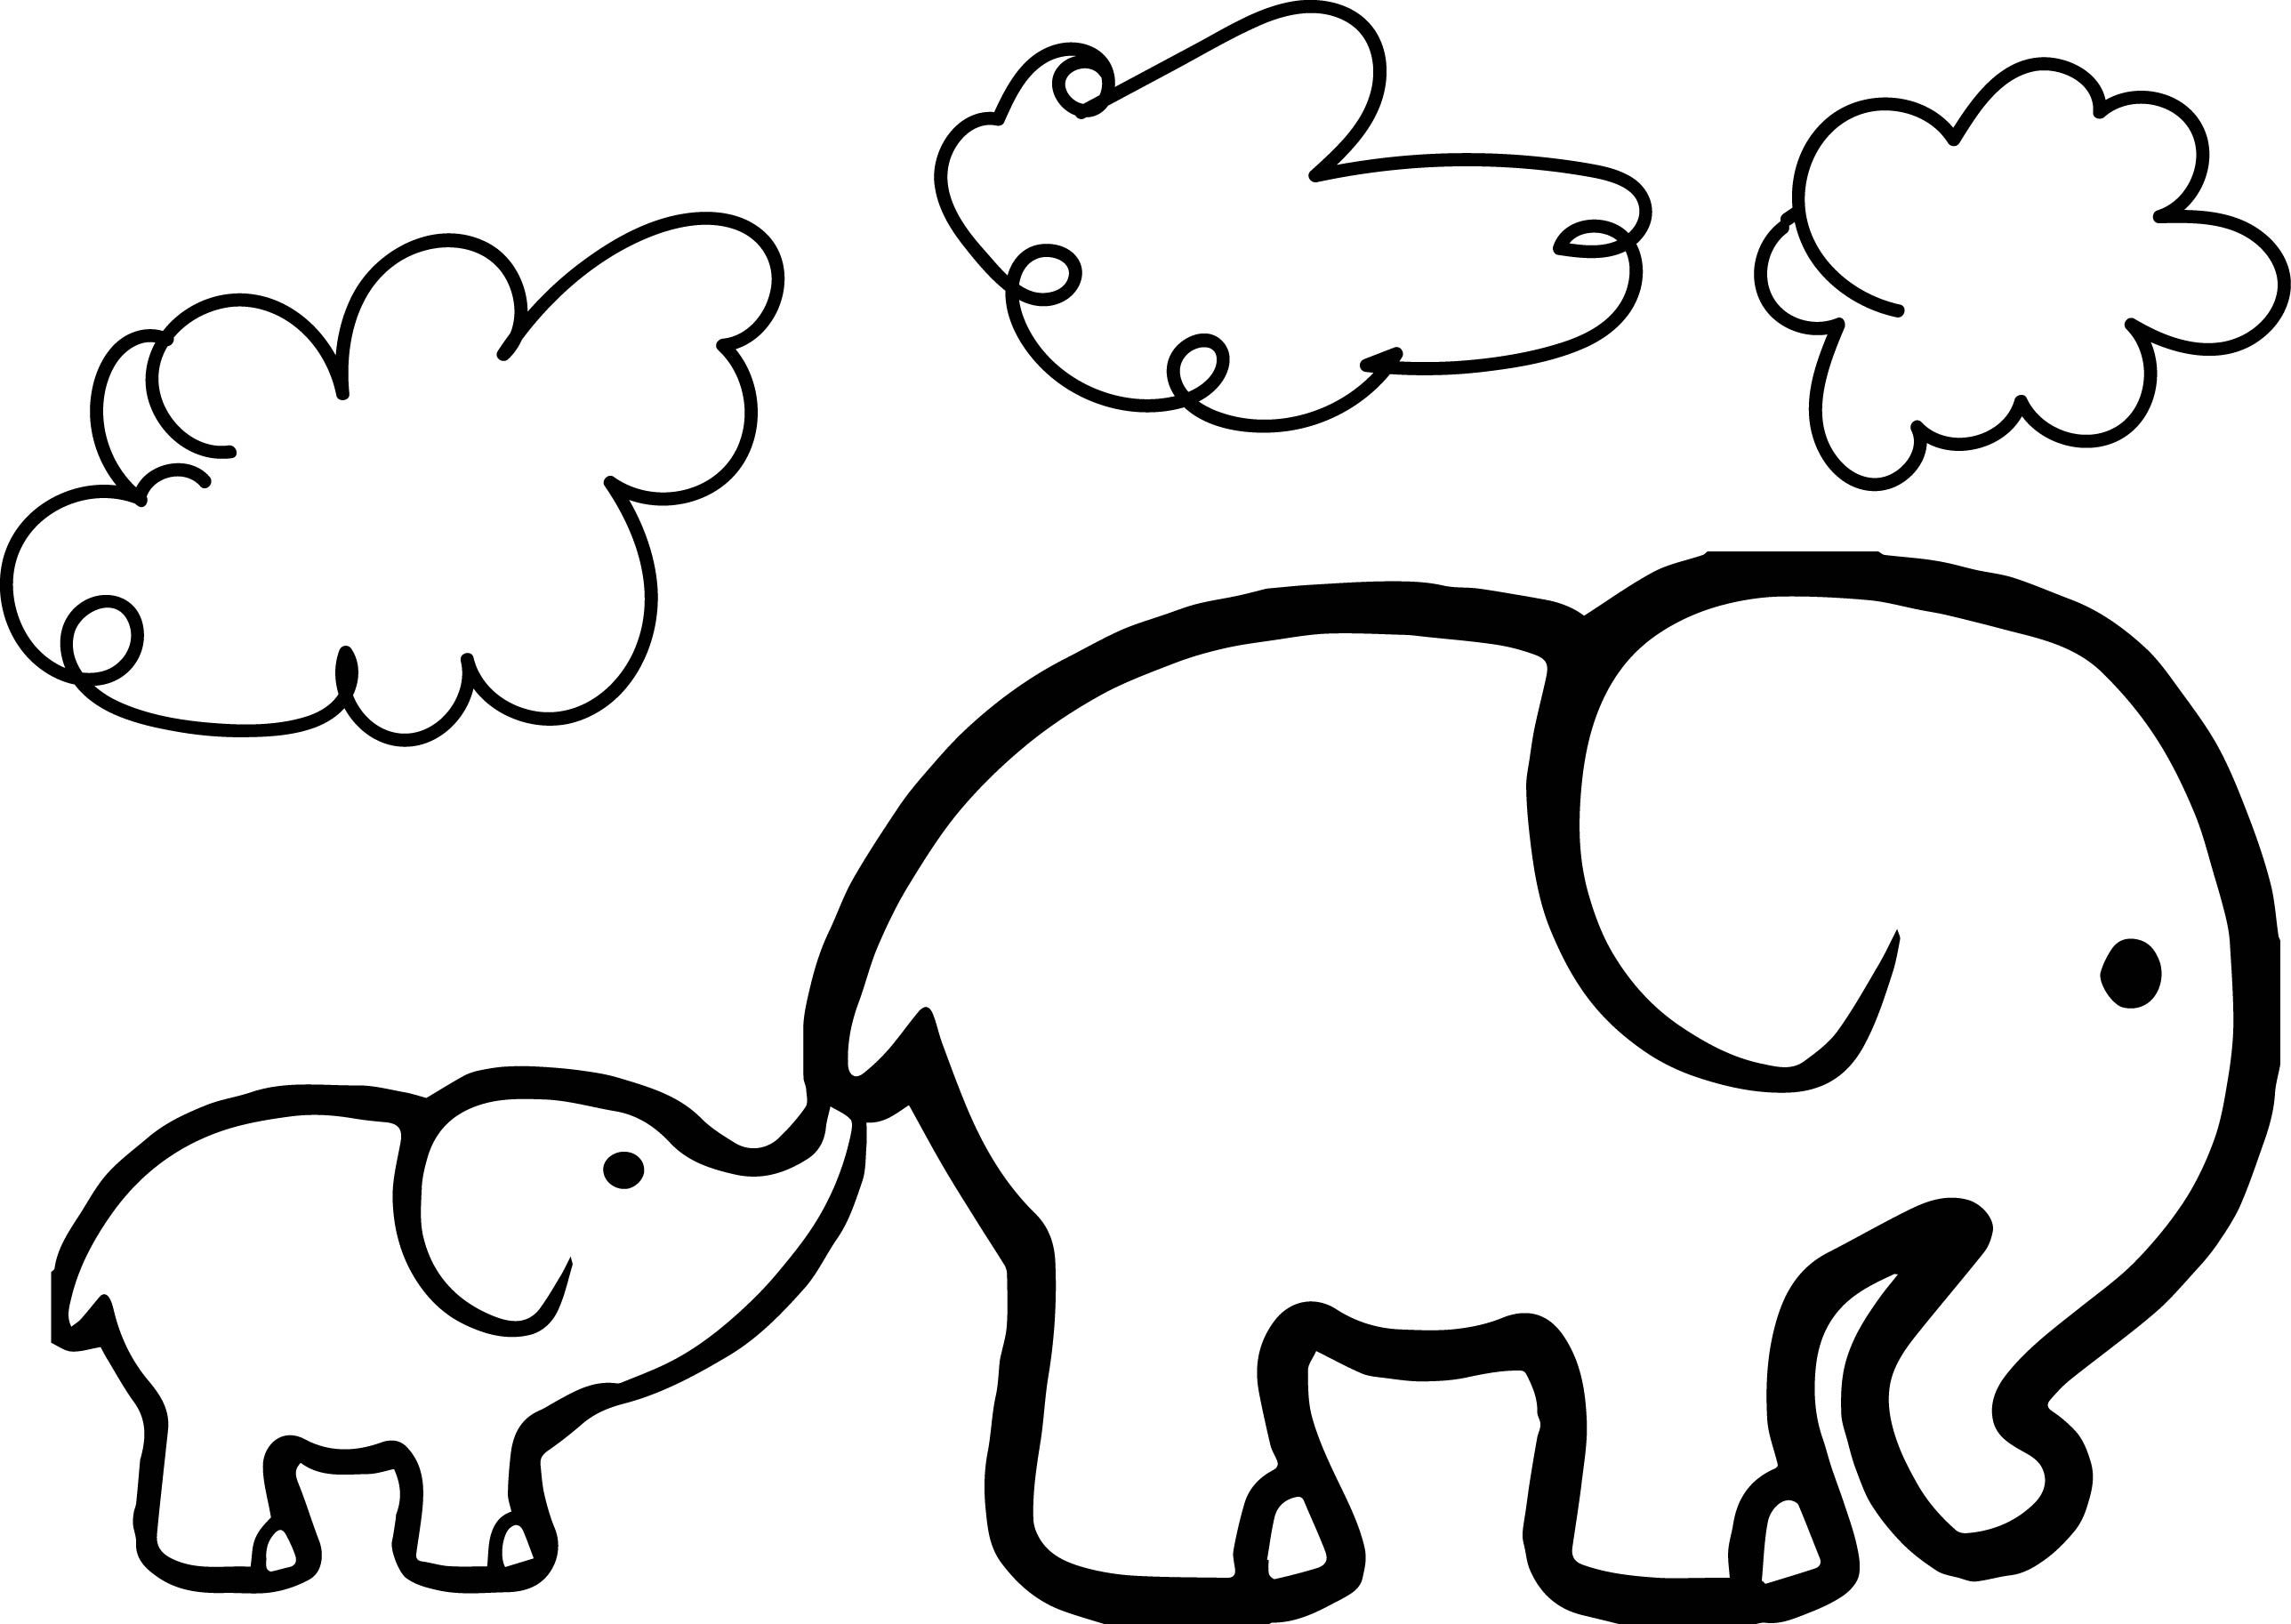 Kids Animal Place Free Elephant Color Page Printable Elephant Coloring Pages  For Kids Animal Place Color Printable Elephant Color Page Elephant